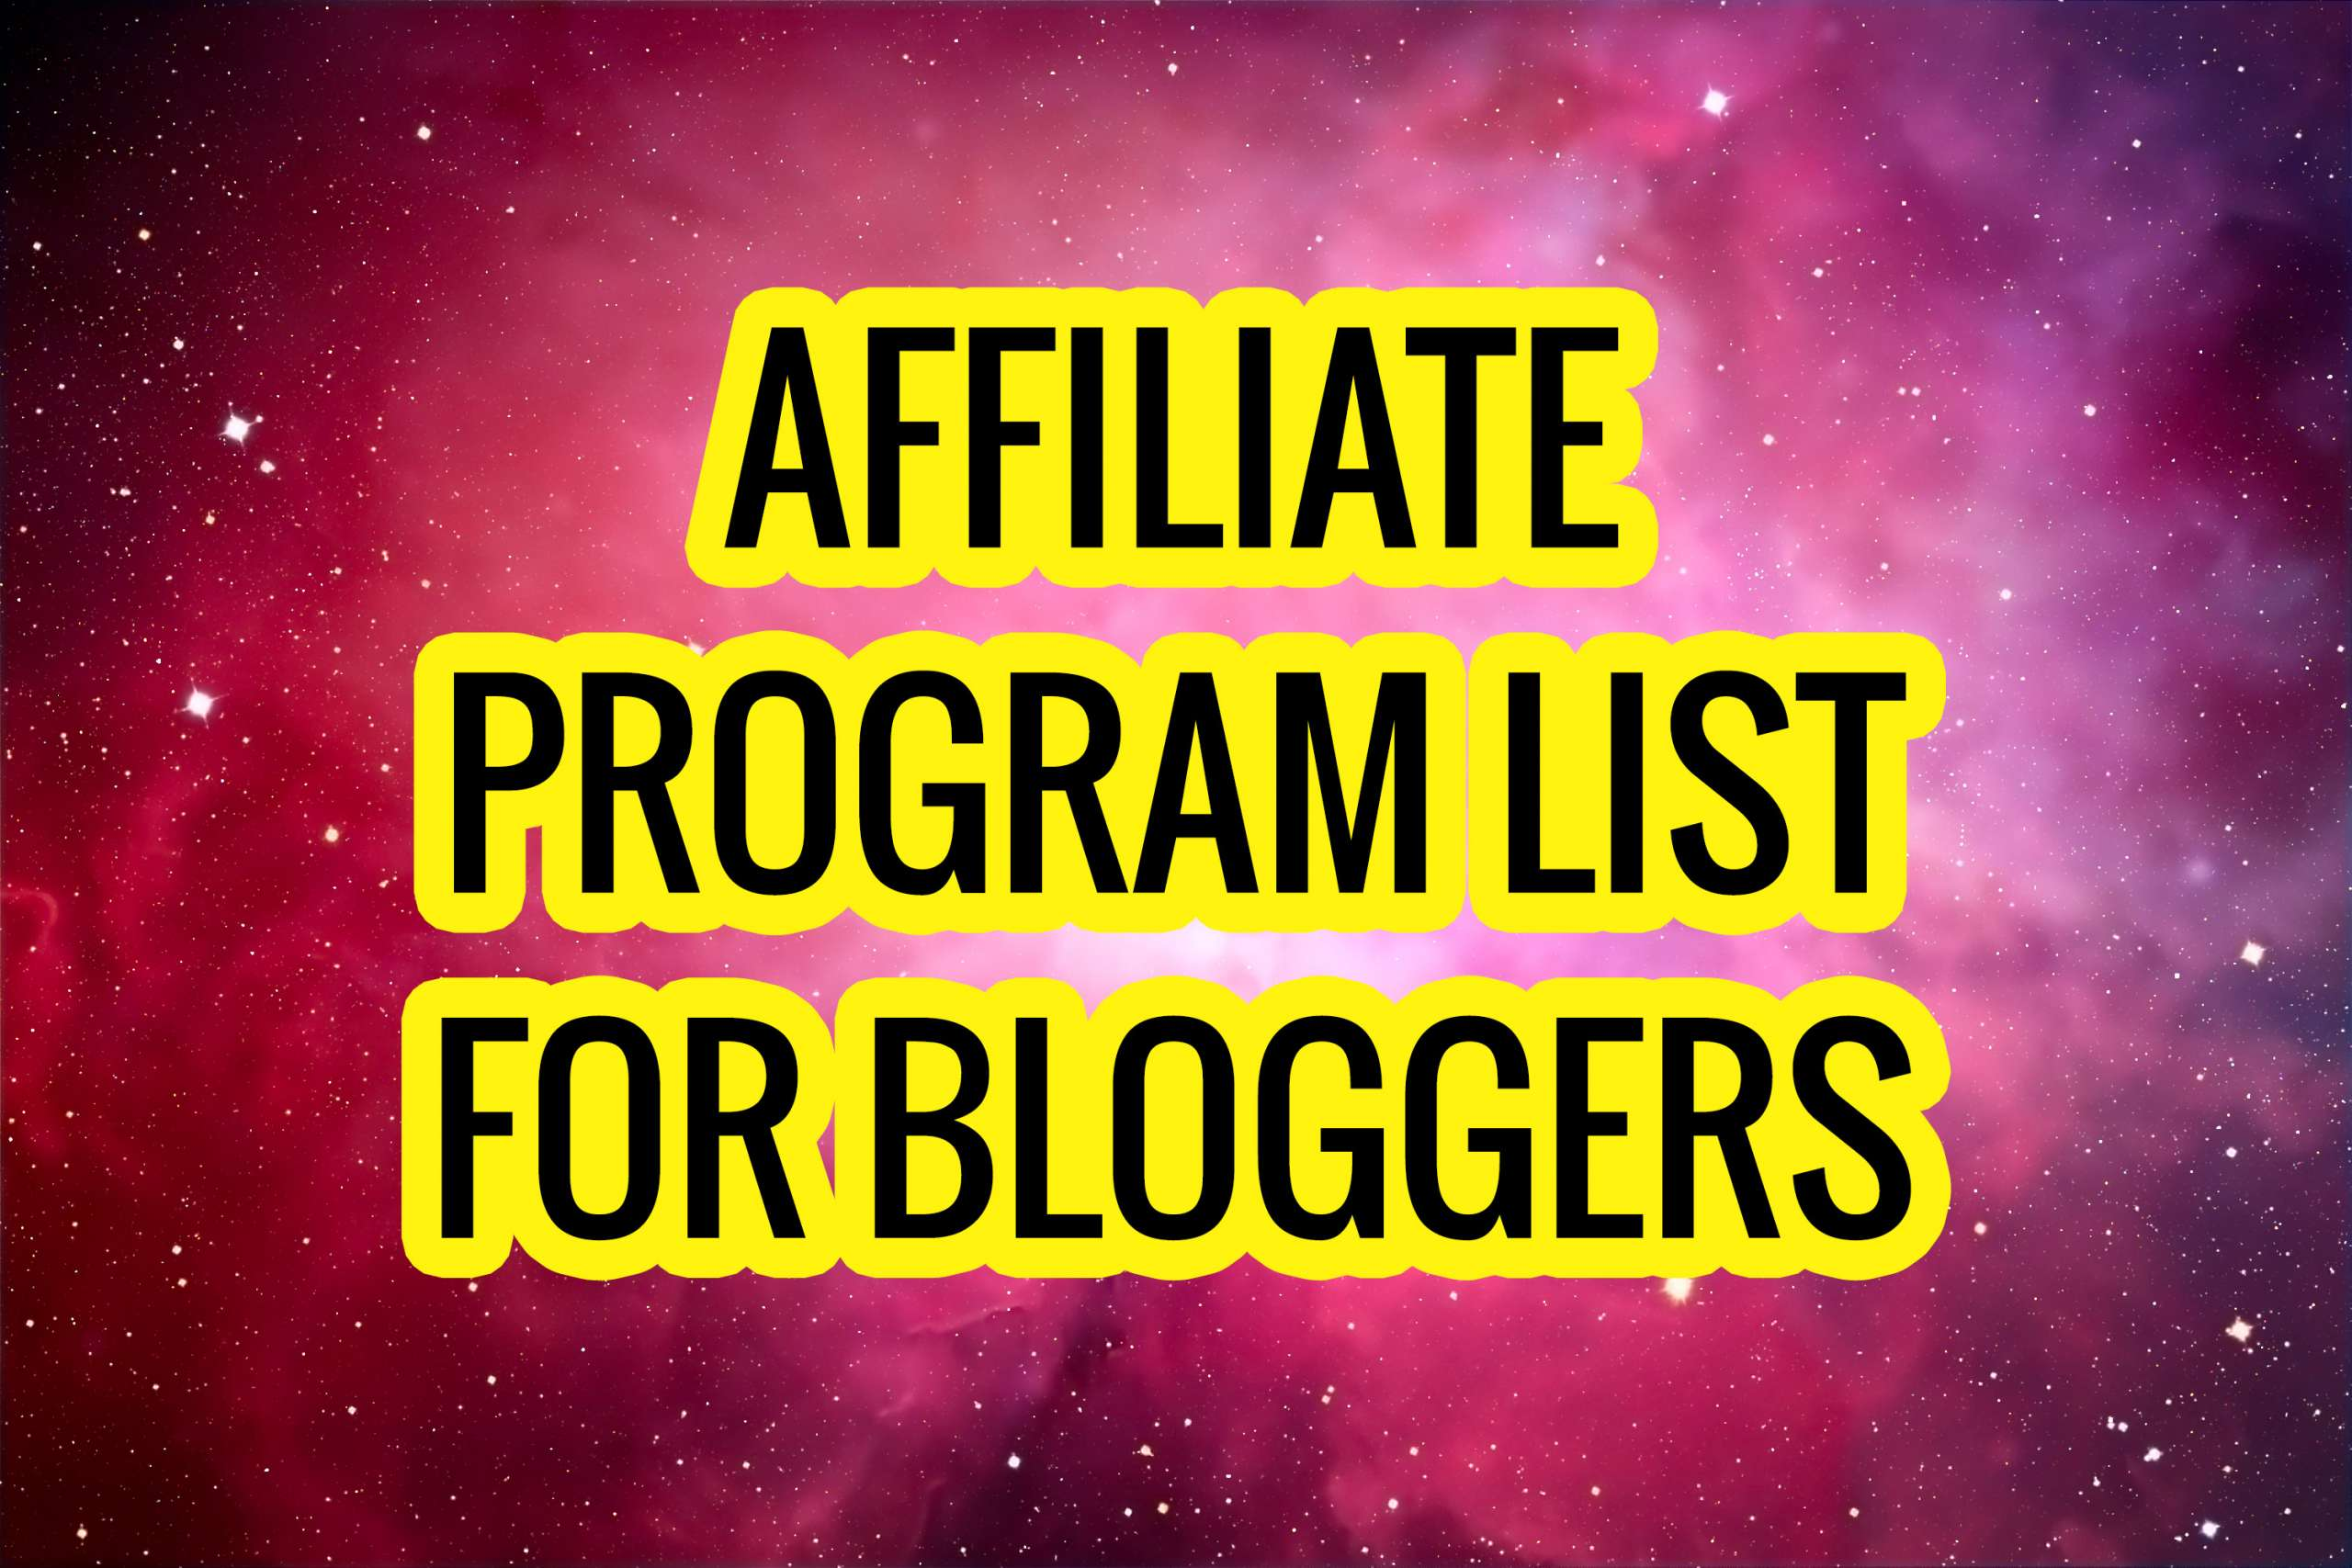 Affiliate Program List for Bloggers